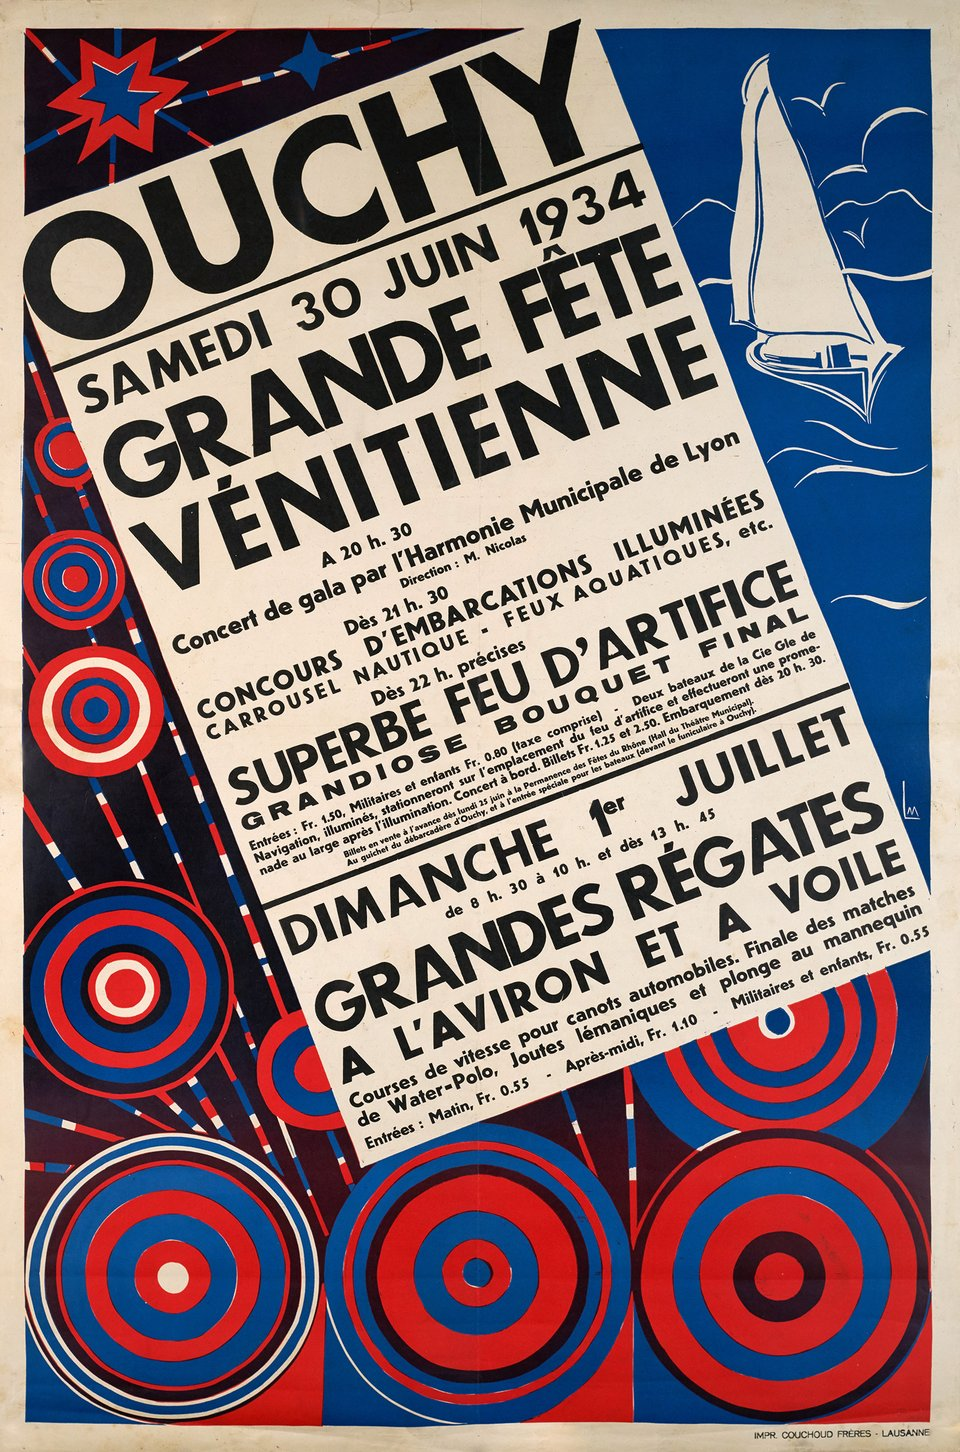 Grande Fête Vénitienne, Ouchy – Affiche ancienne –  MONOGRAMM – 1934